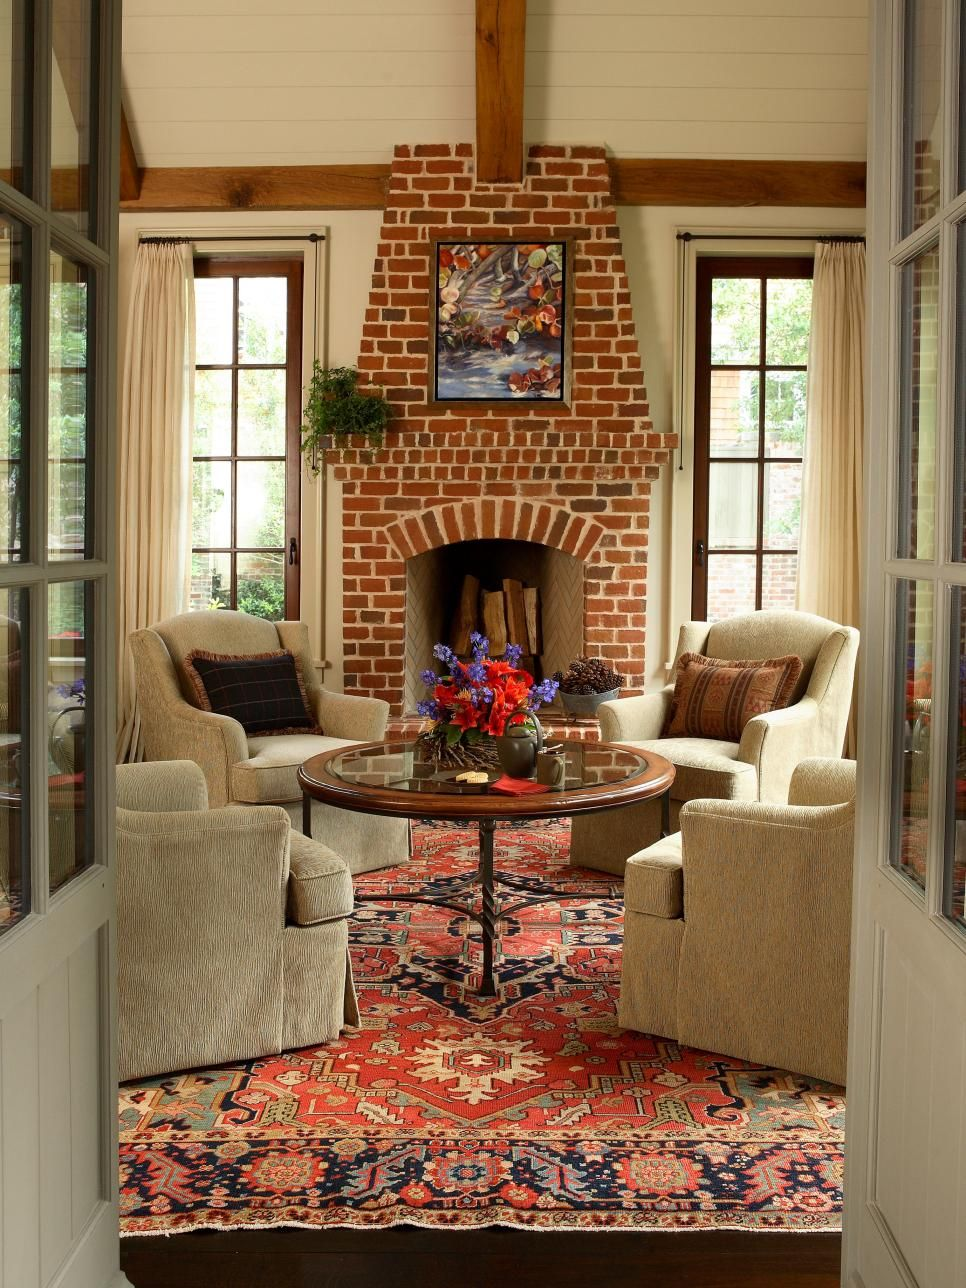 The Shape Of This Fireplace Along With Its Traditional Red Brick